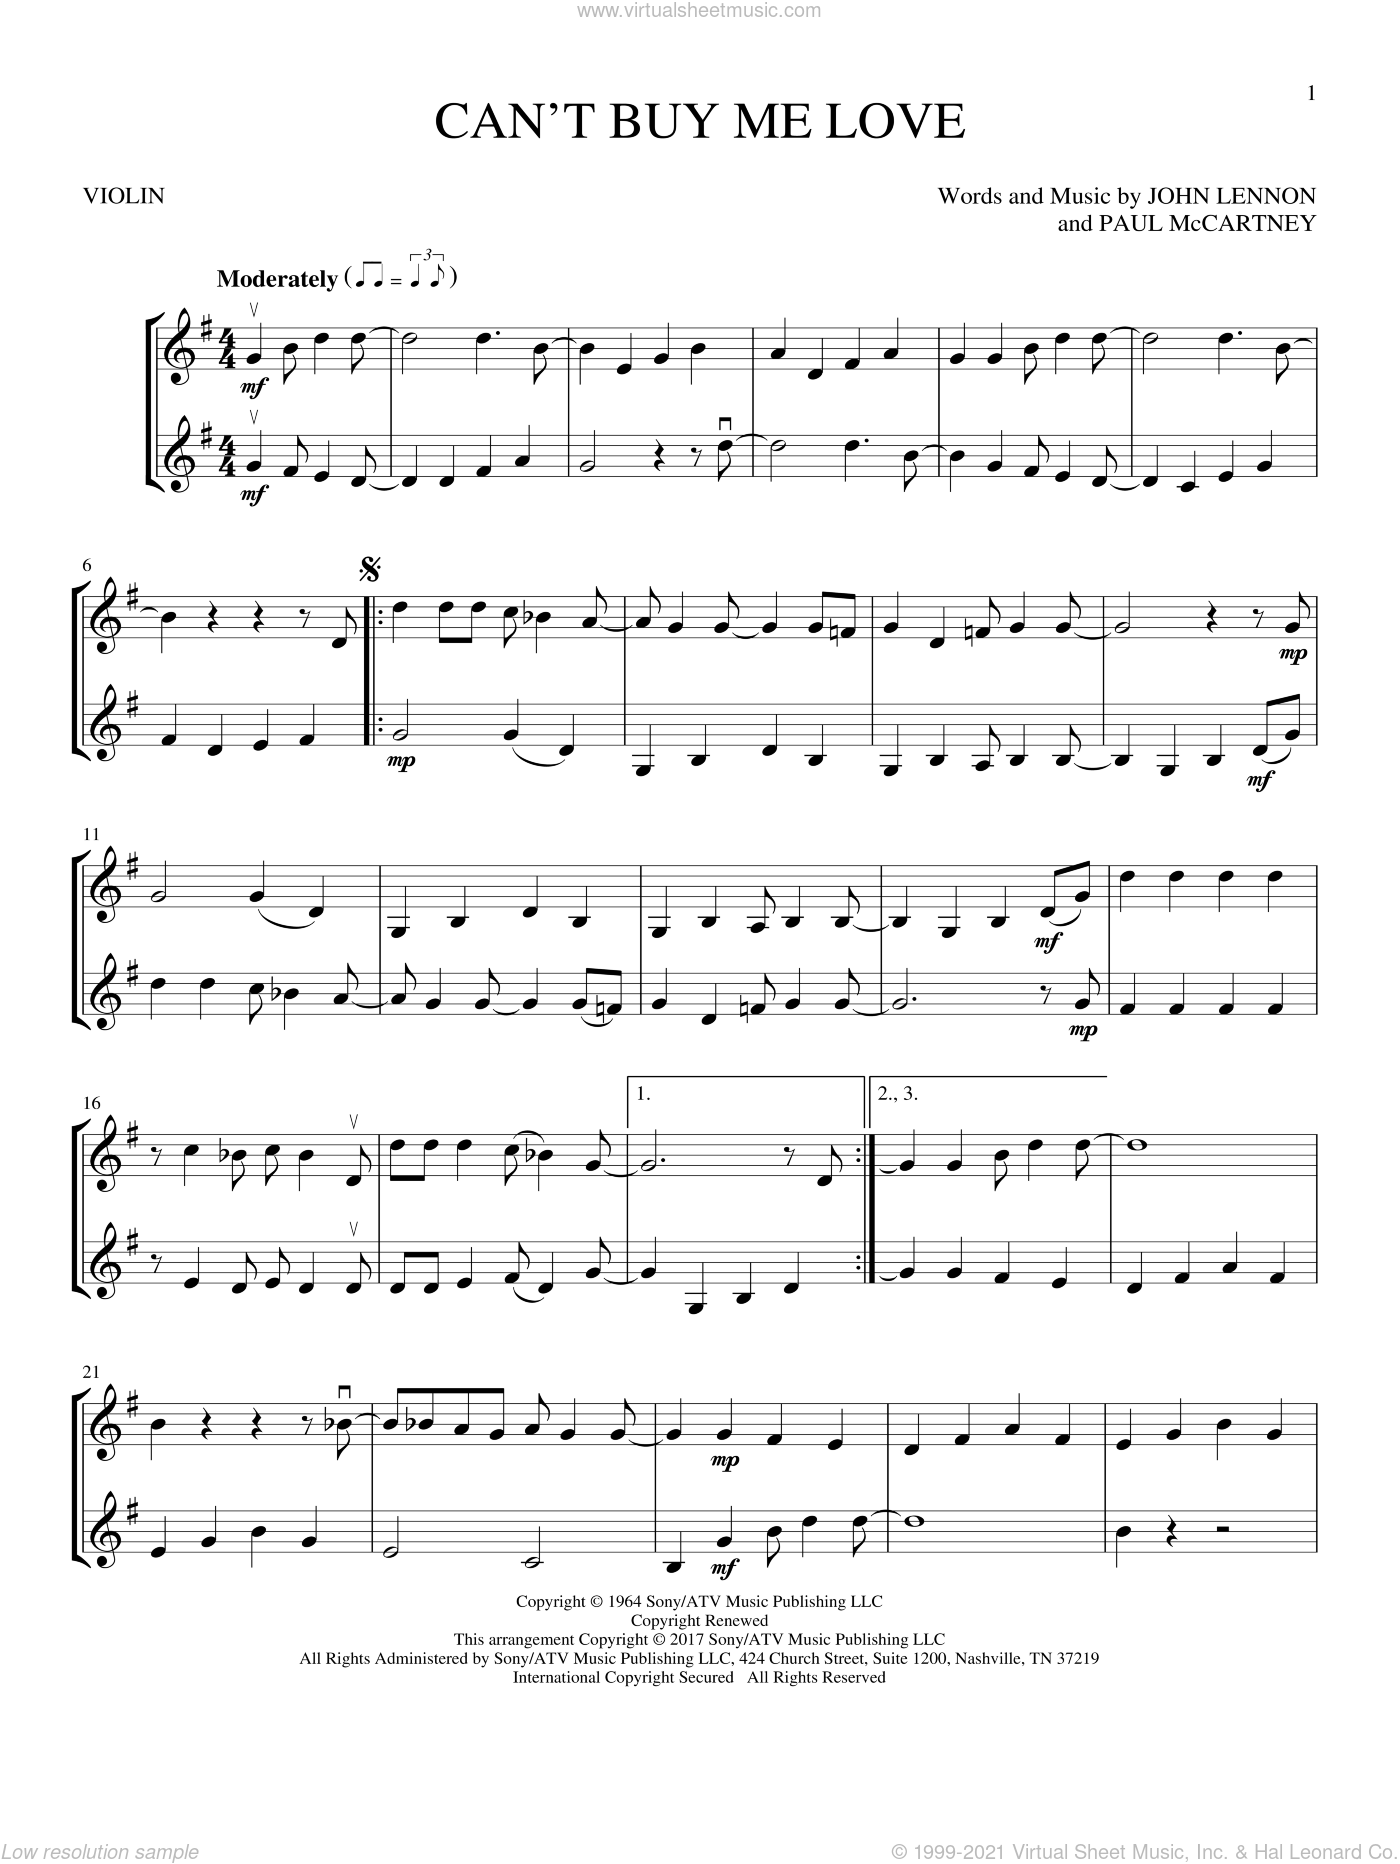 Can't Buy Me Love sheet music for two violins (duets, violin duets) by The Beatles, John Lennon and Paul McCartney, intermediate skill level